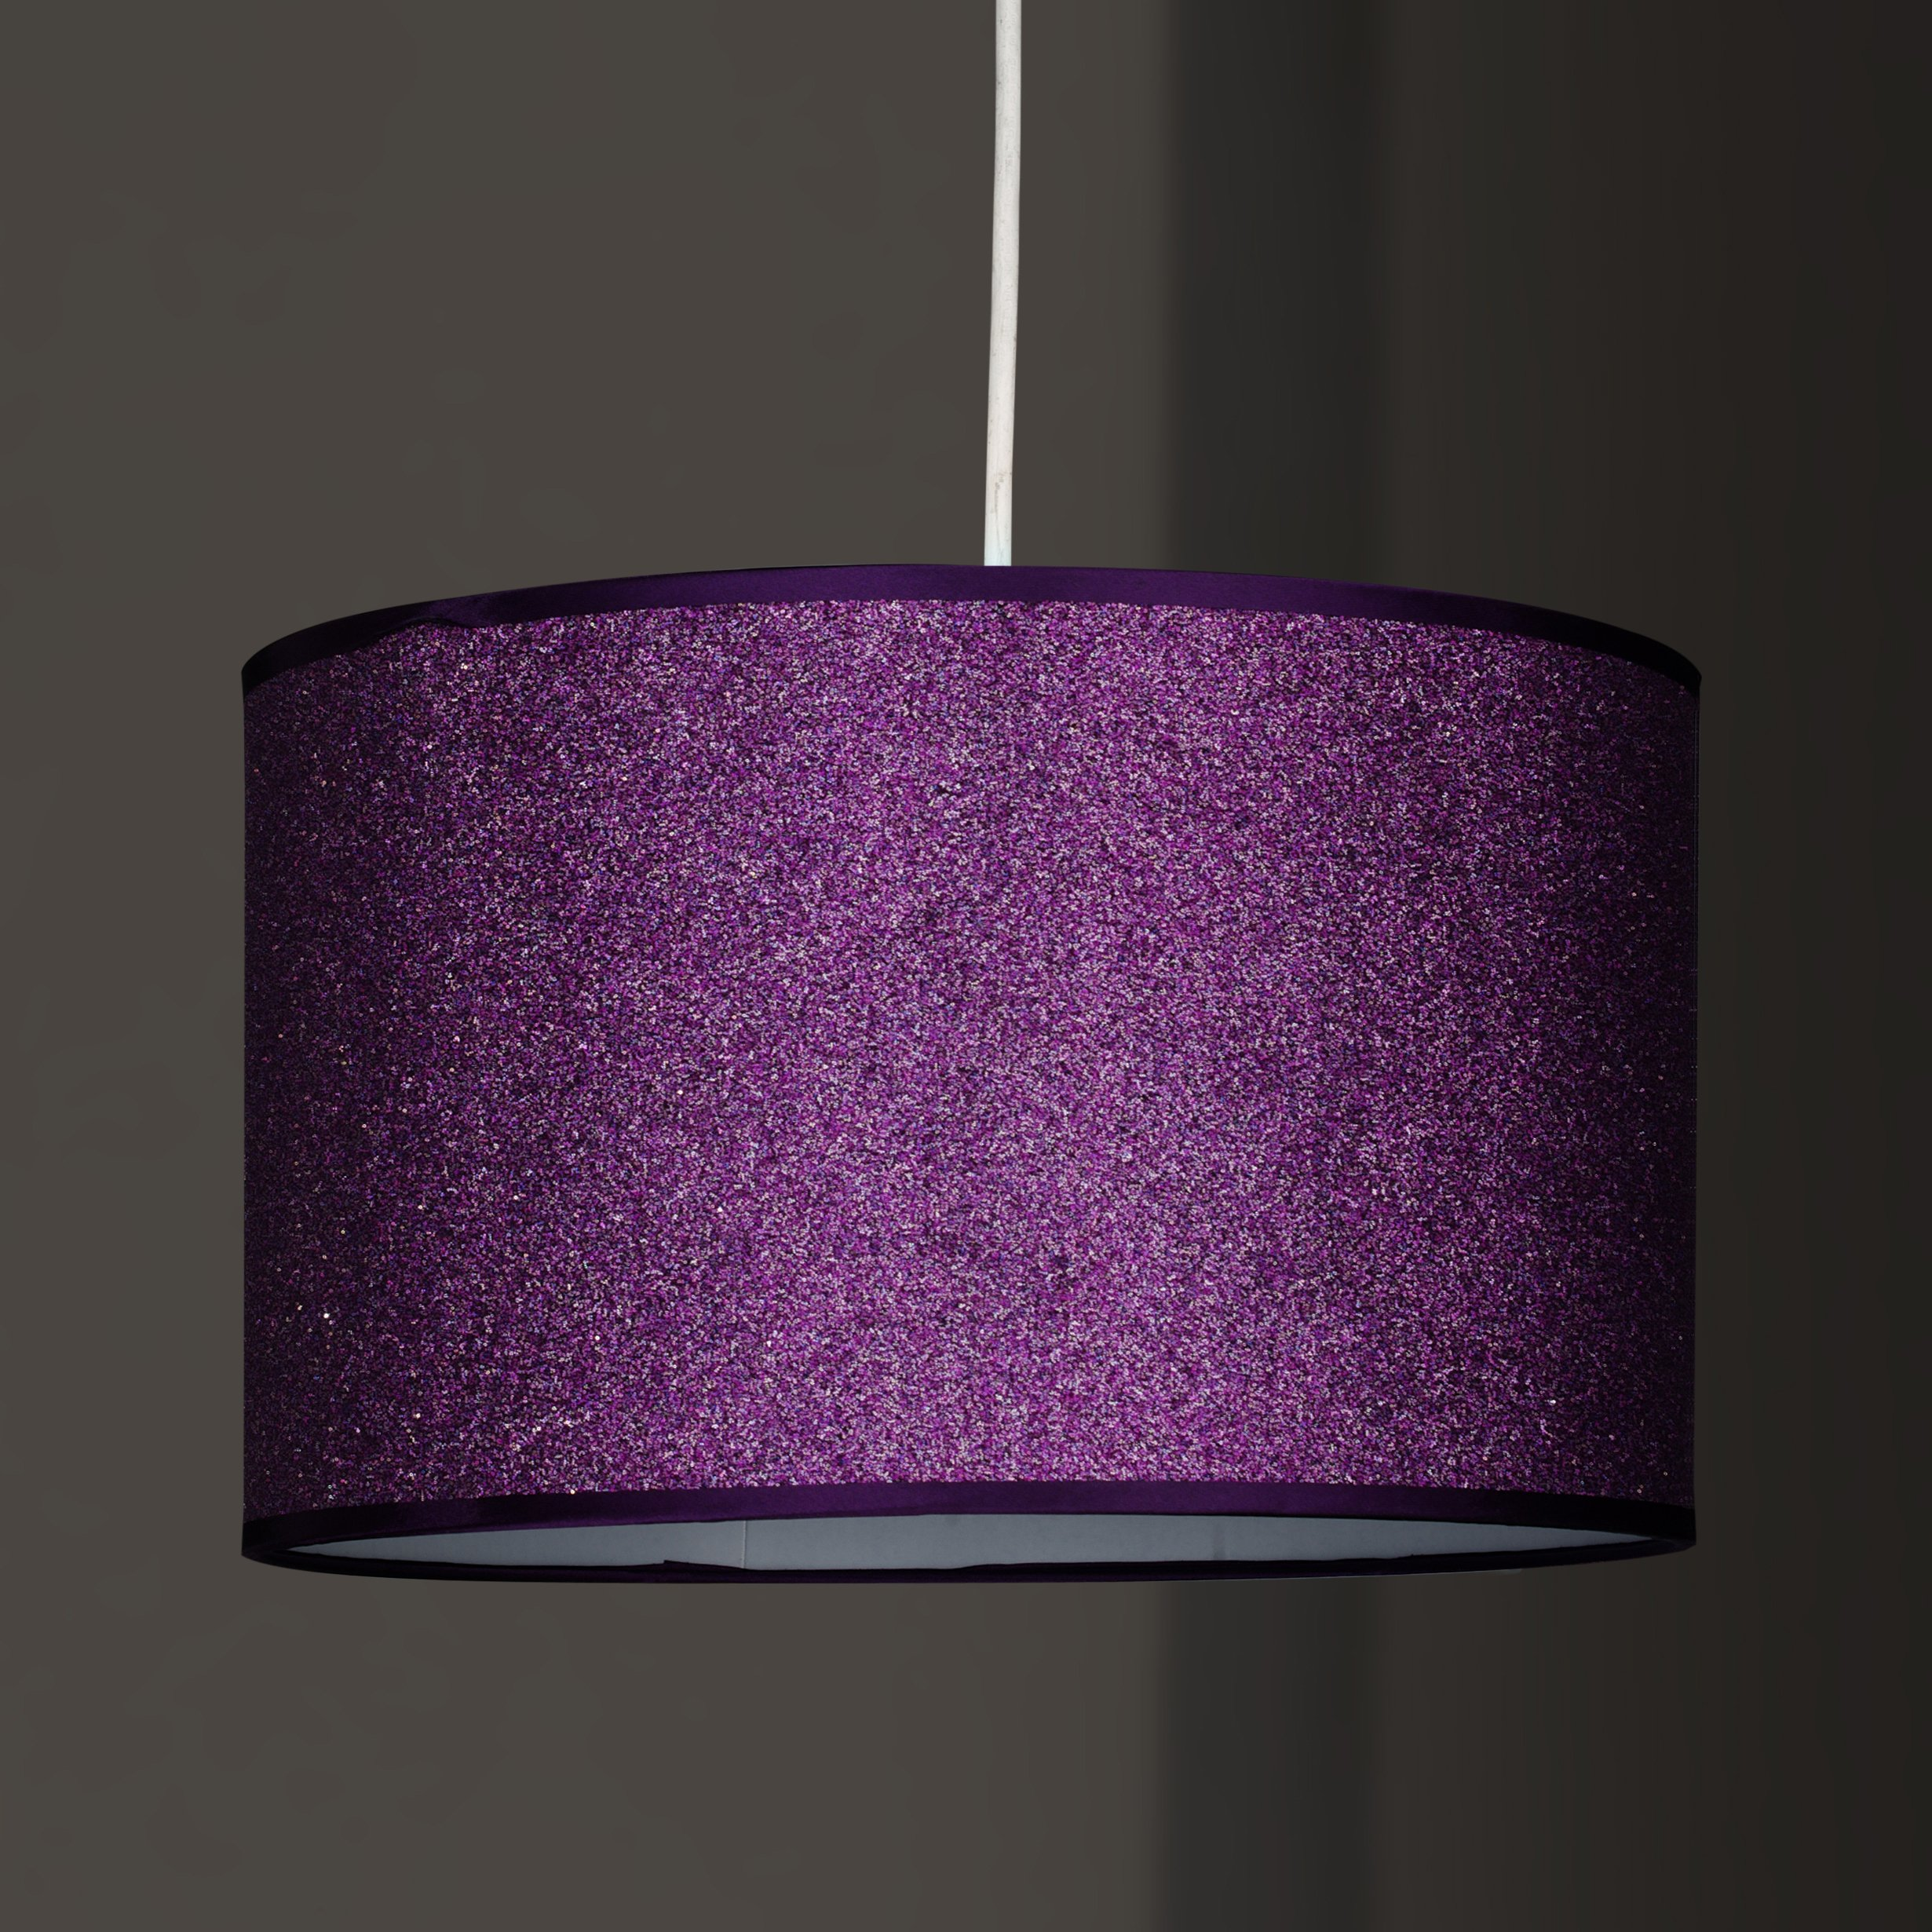 Glitter Shiny Ceiling Light Shade Pendant Non Electric Easy Fit Option In Red Purple Silver Or Pink Lights And Linen